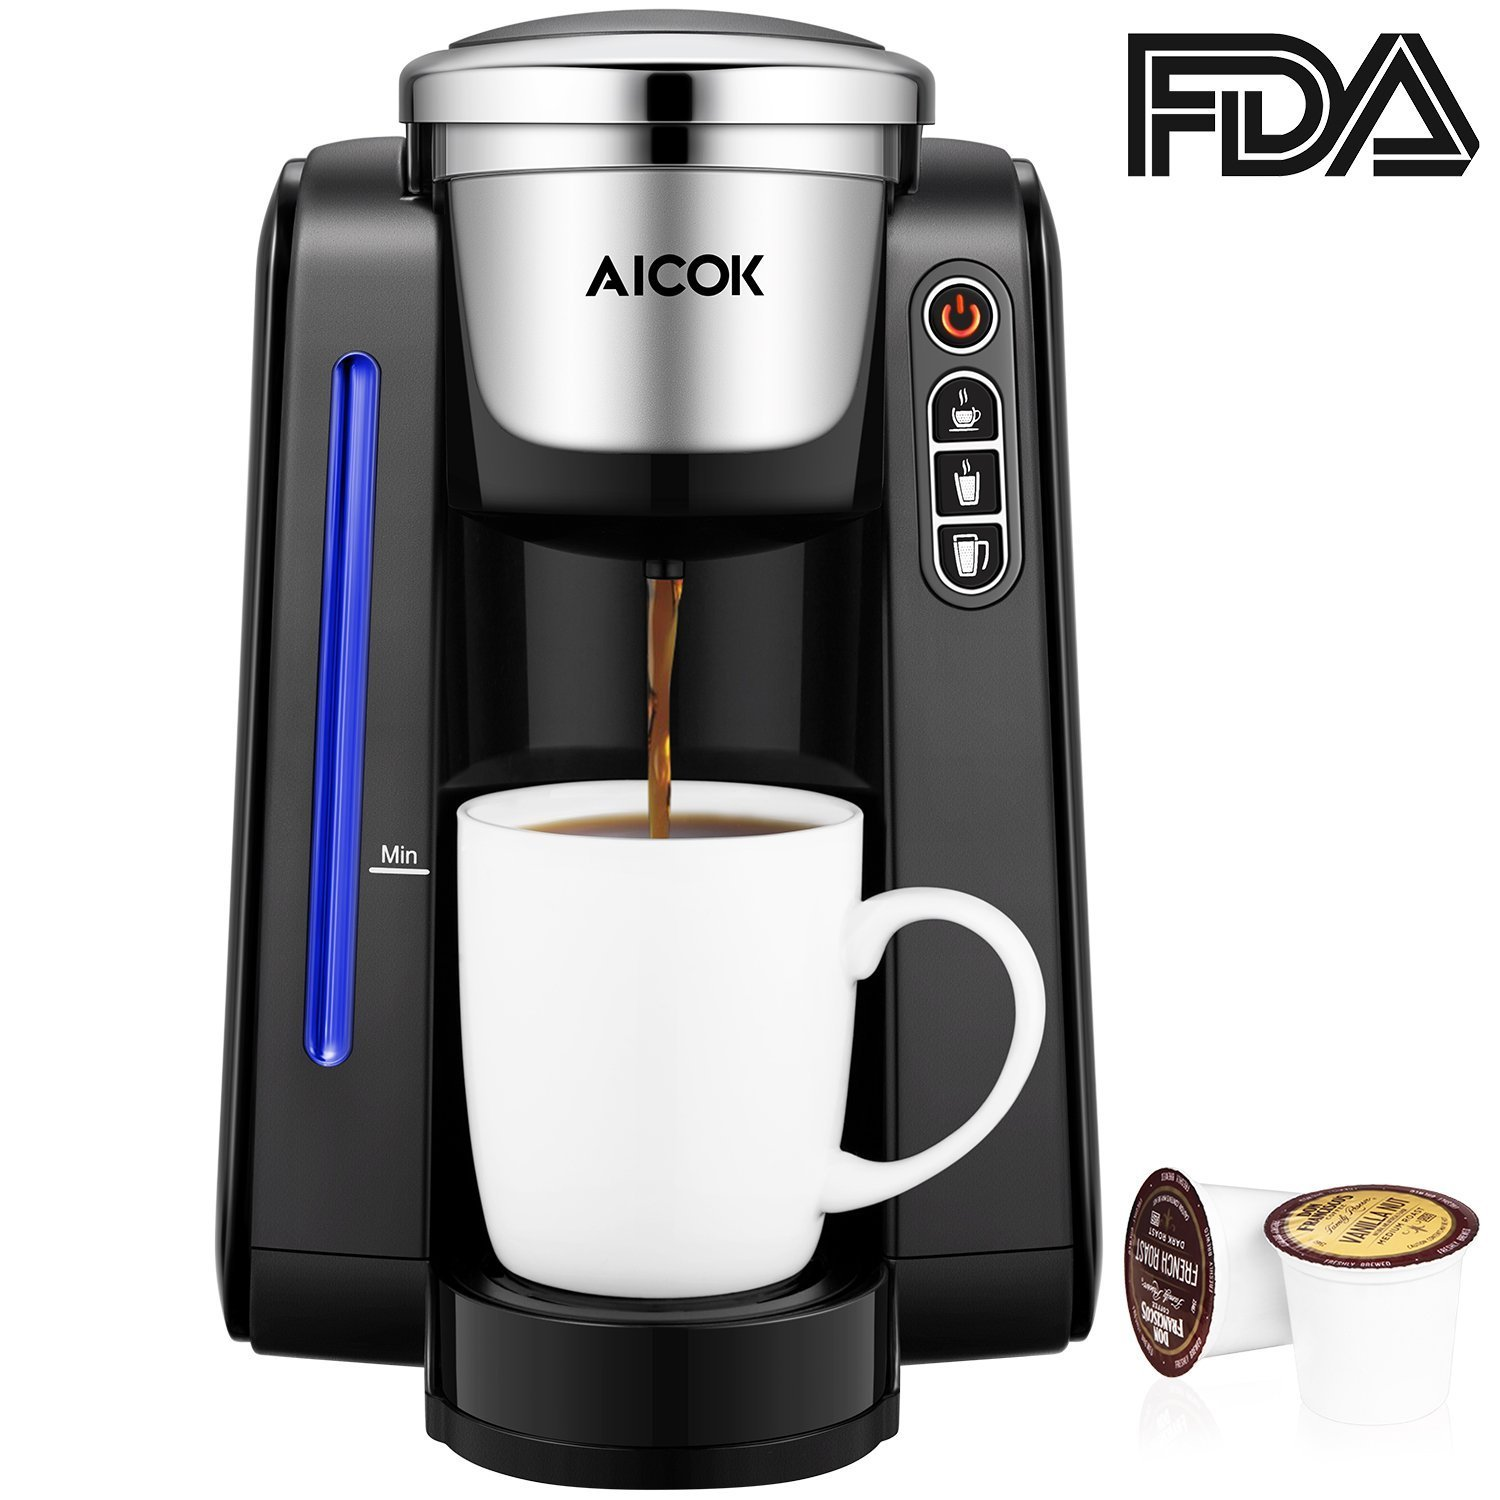 Aicok Single Serve Programmable Coffee Maker, Five Brew Sizes for Most Single Cup Pods Including K-CUP pods, 45 OZ Large Removable Water Tank, Quick Brew Technology, 1420W, Black by AICOK